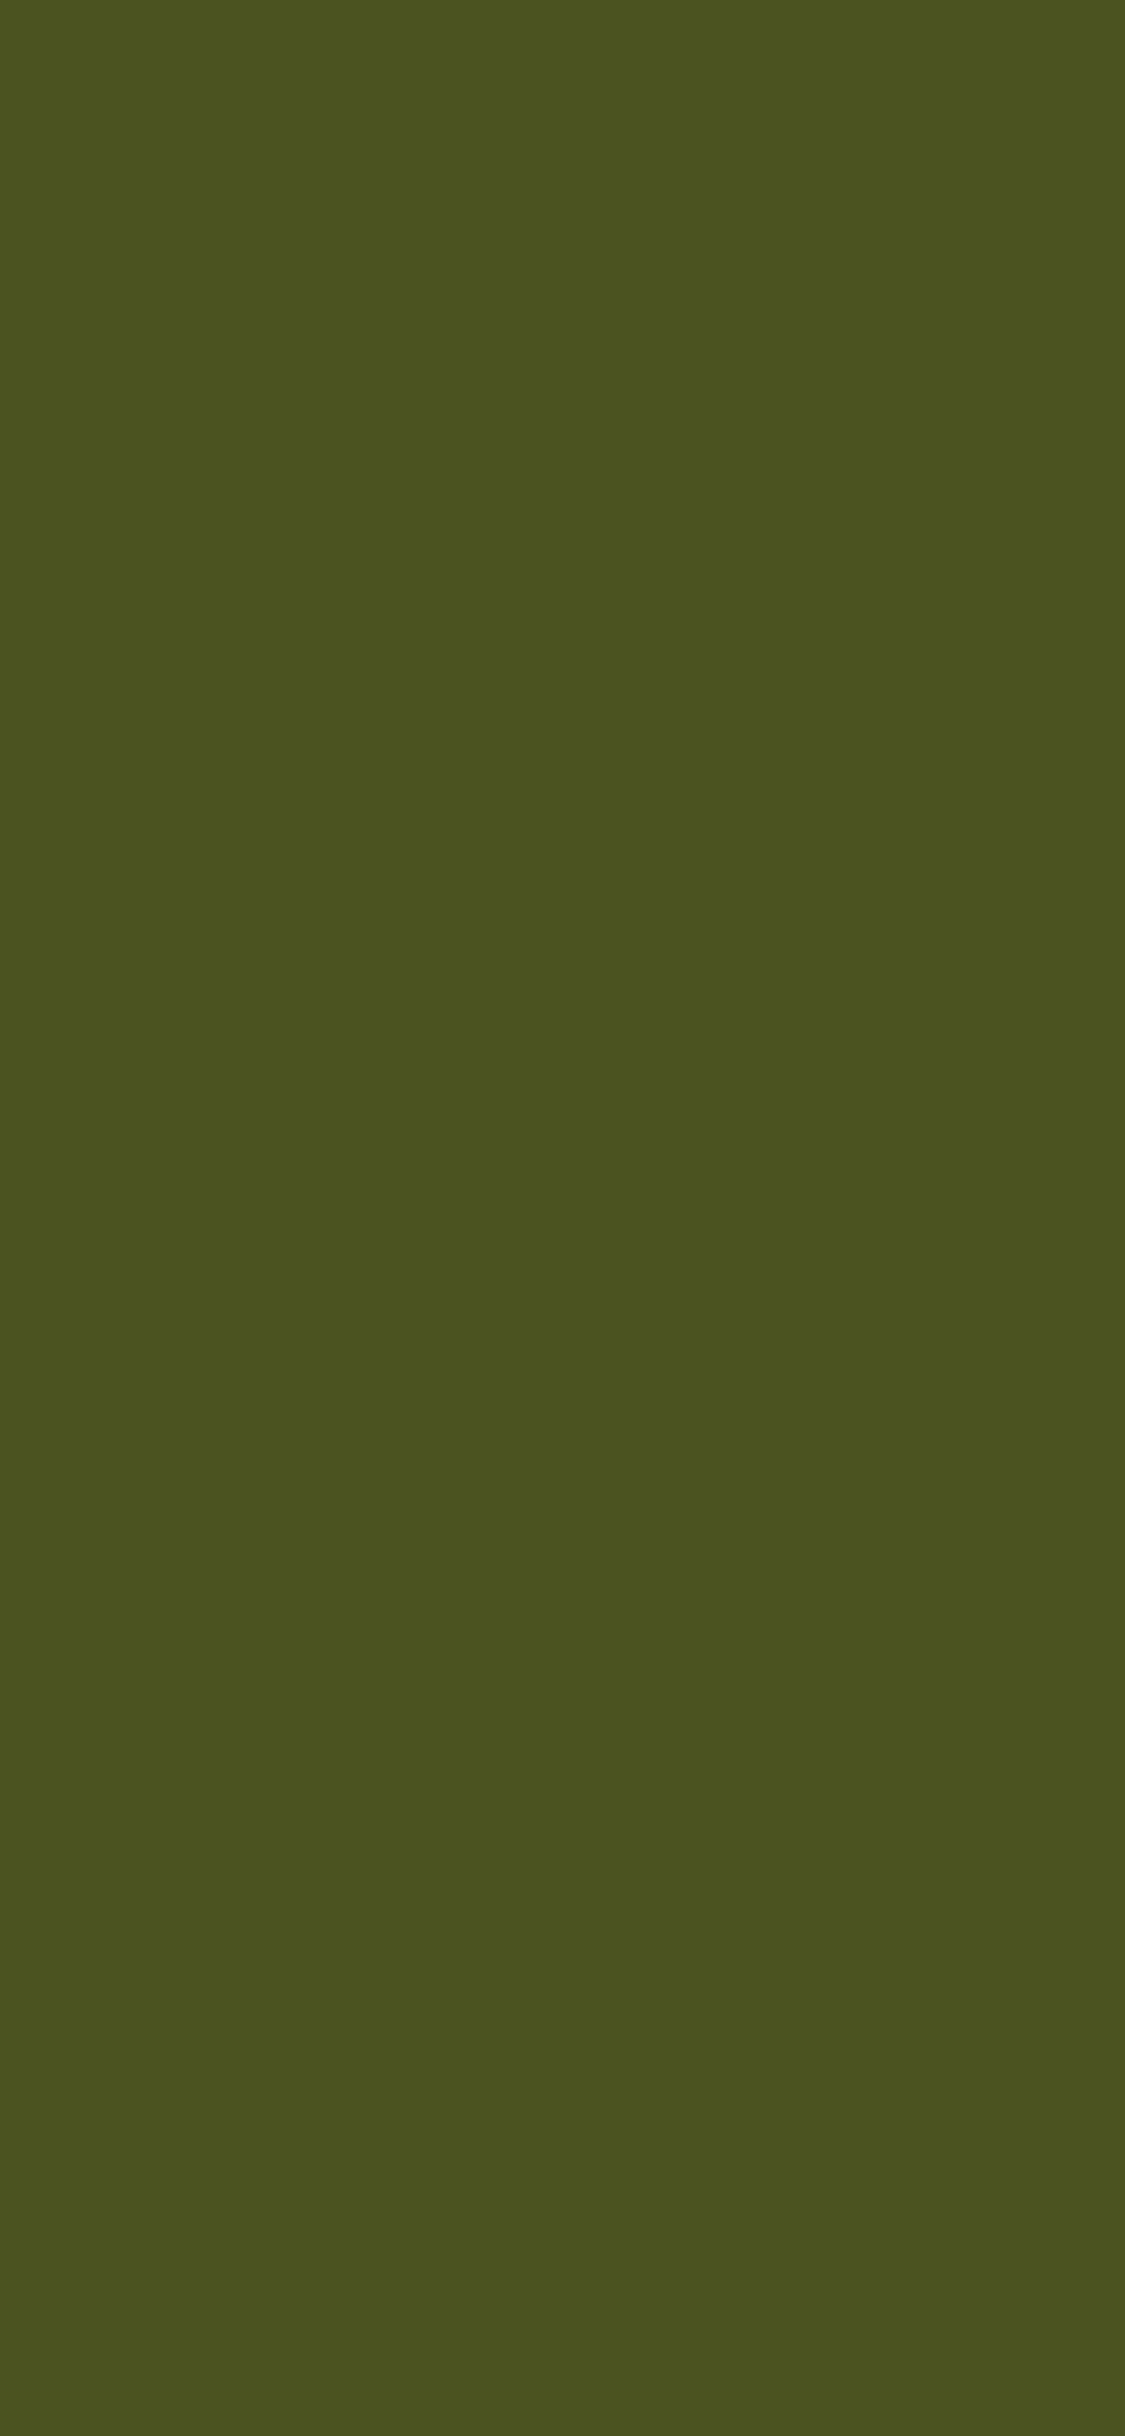 1125x2436 Army Green Solid Color Background